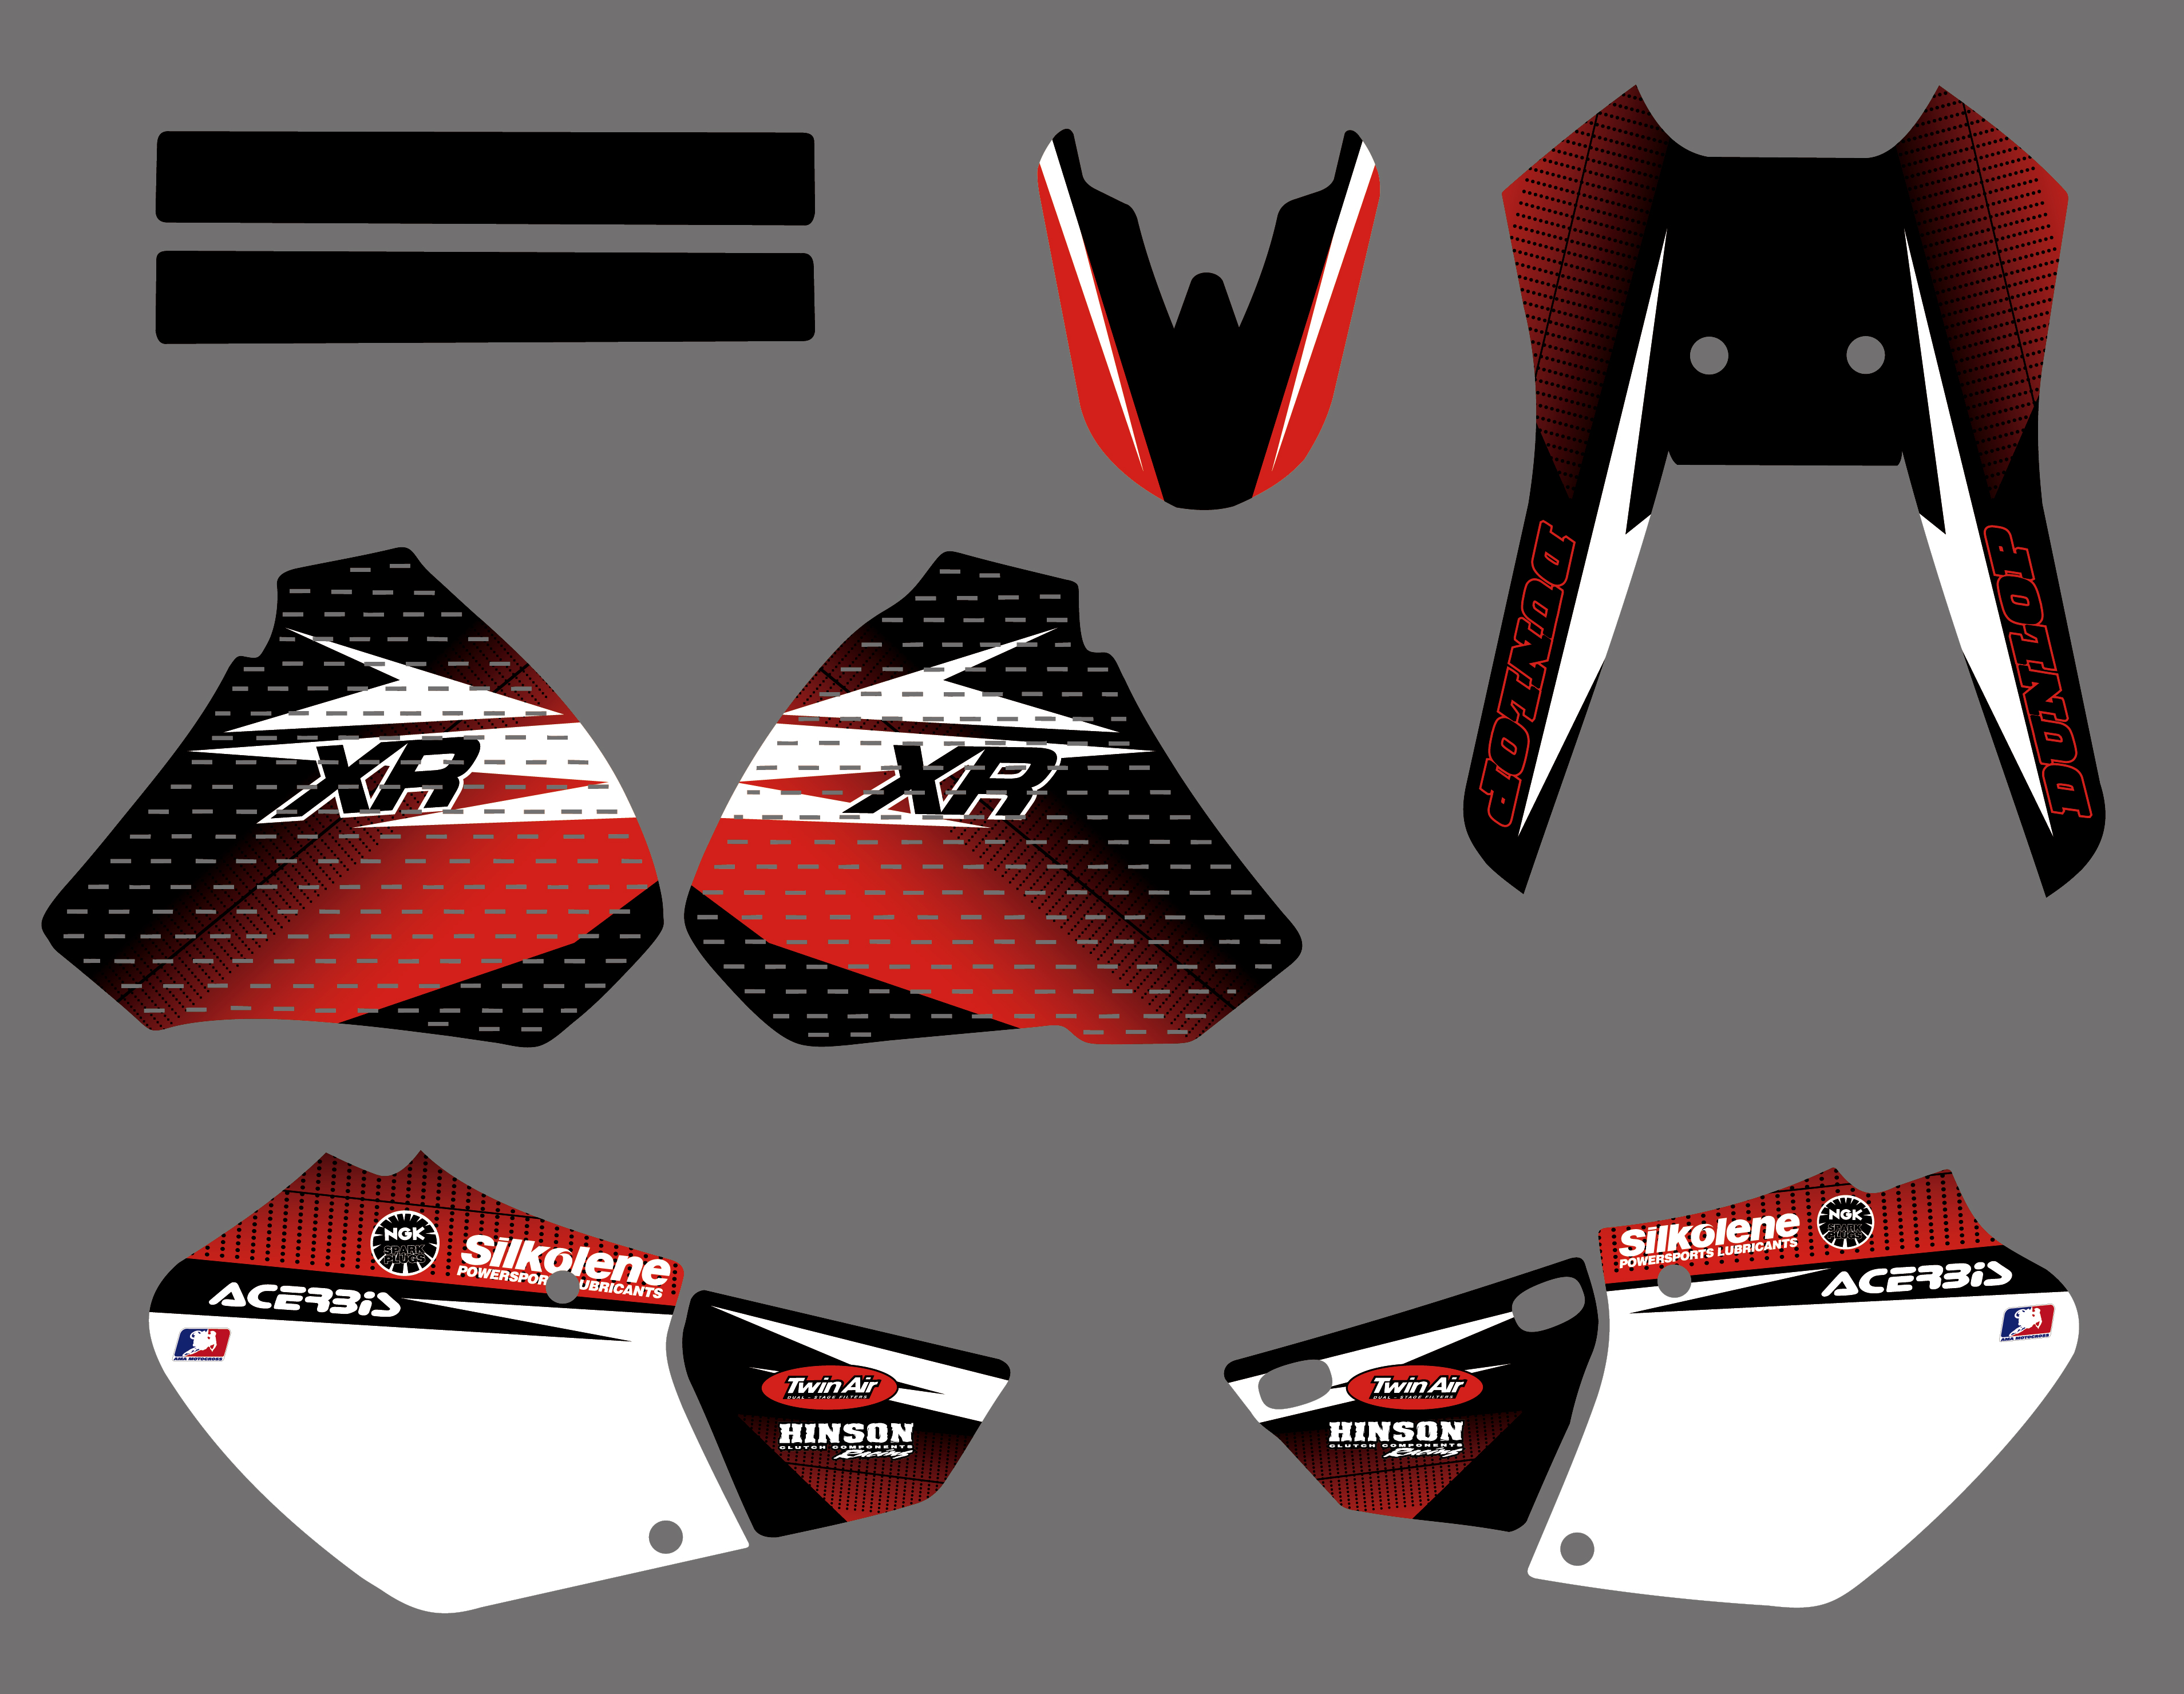 TEAM GRAPHICS & BACKGROUNDS DECALS STICKERS Kit for Honda XR250 XR400 1996 1997 1998 1999 2000 2001 2002 2003 2004 XR 250 400